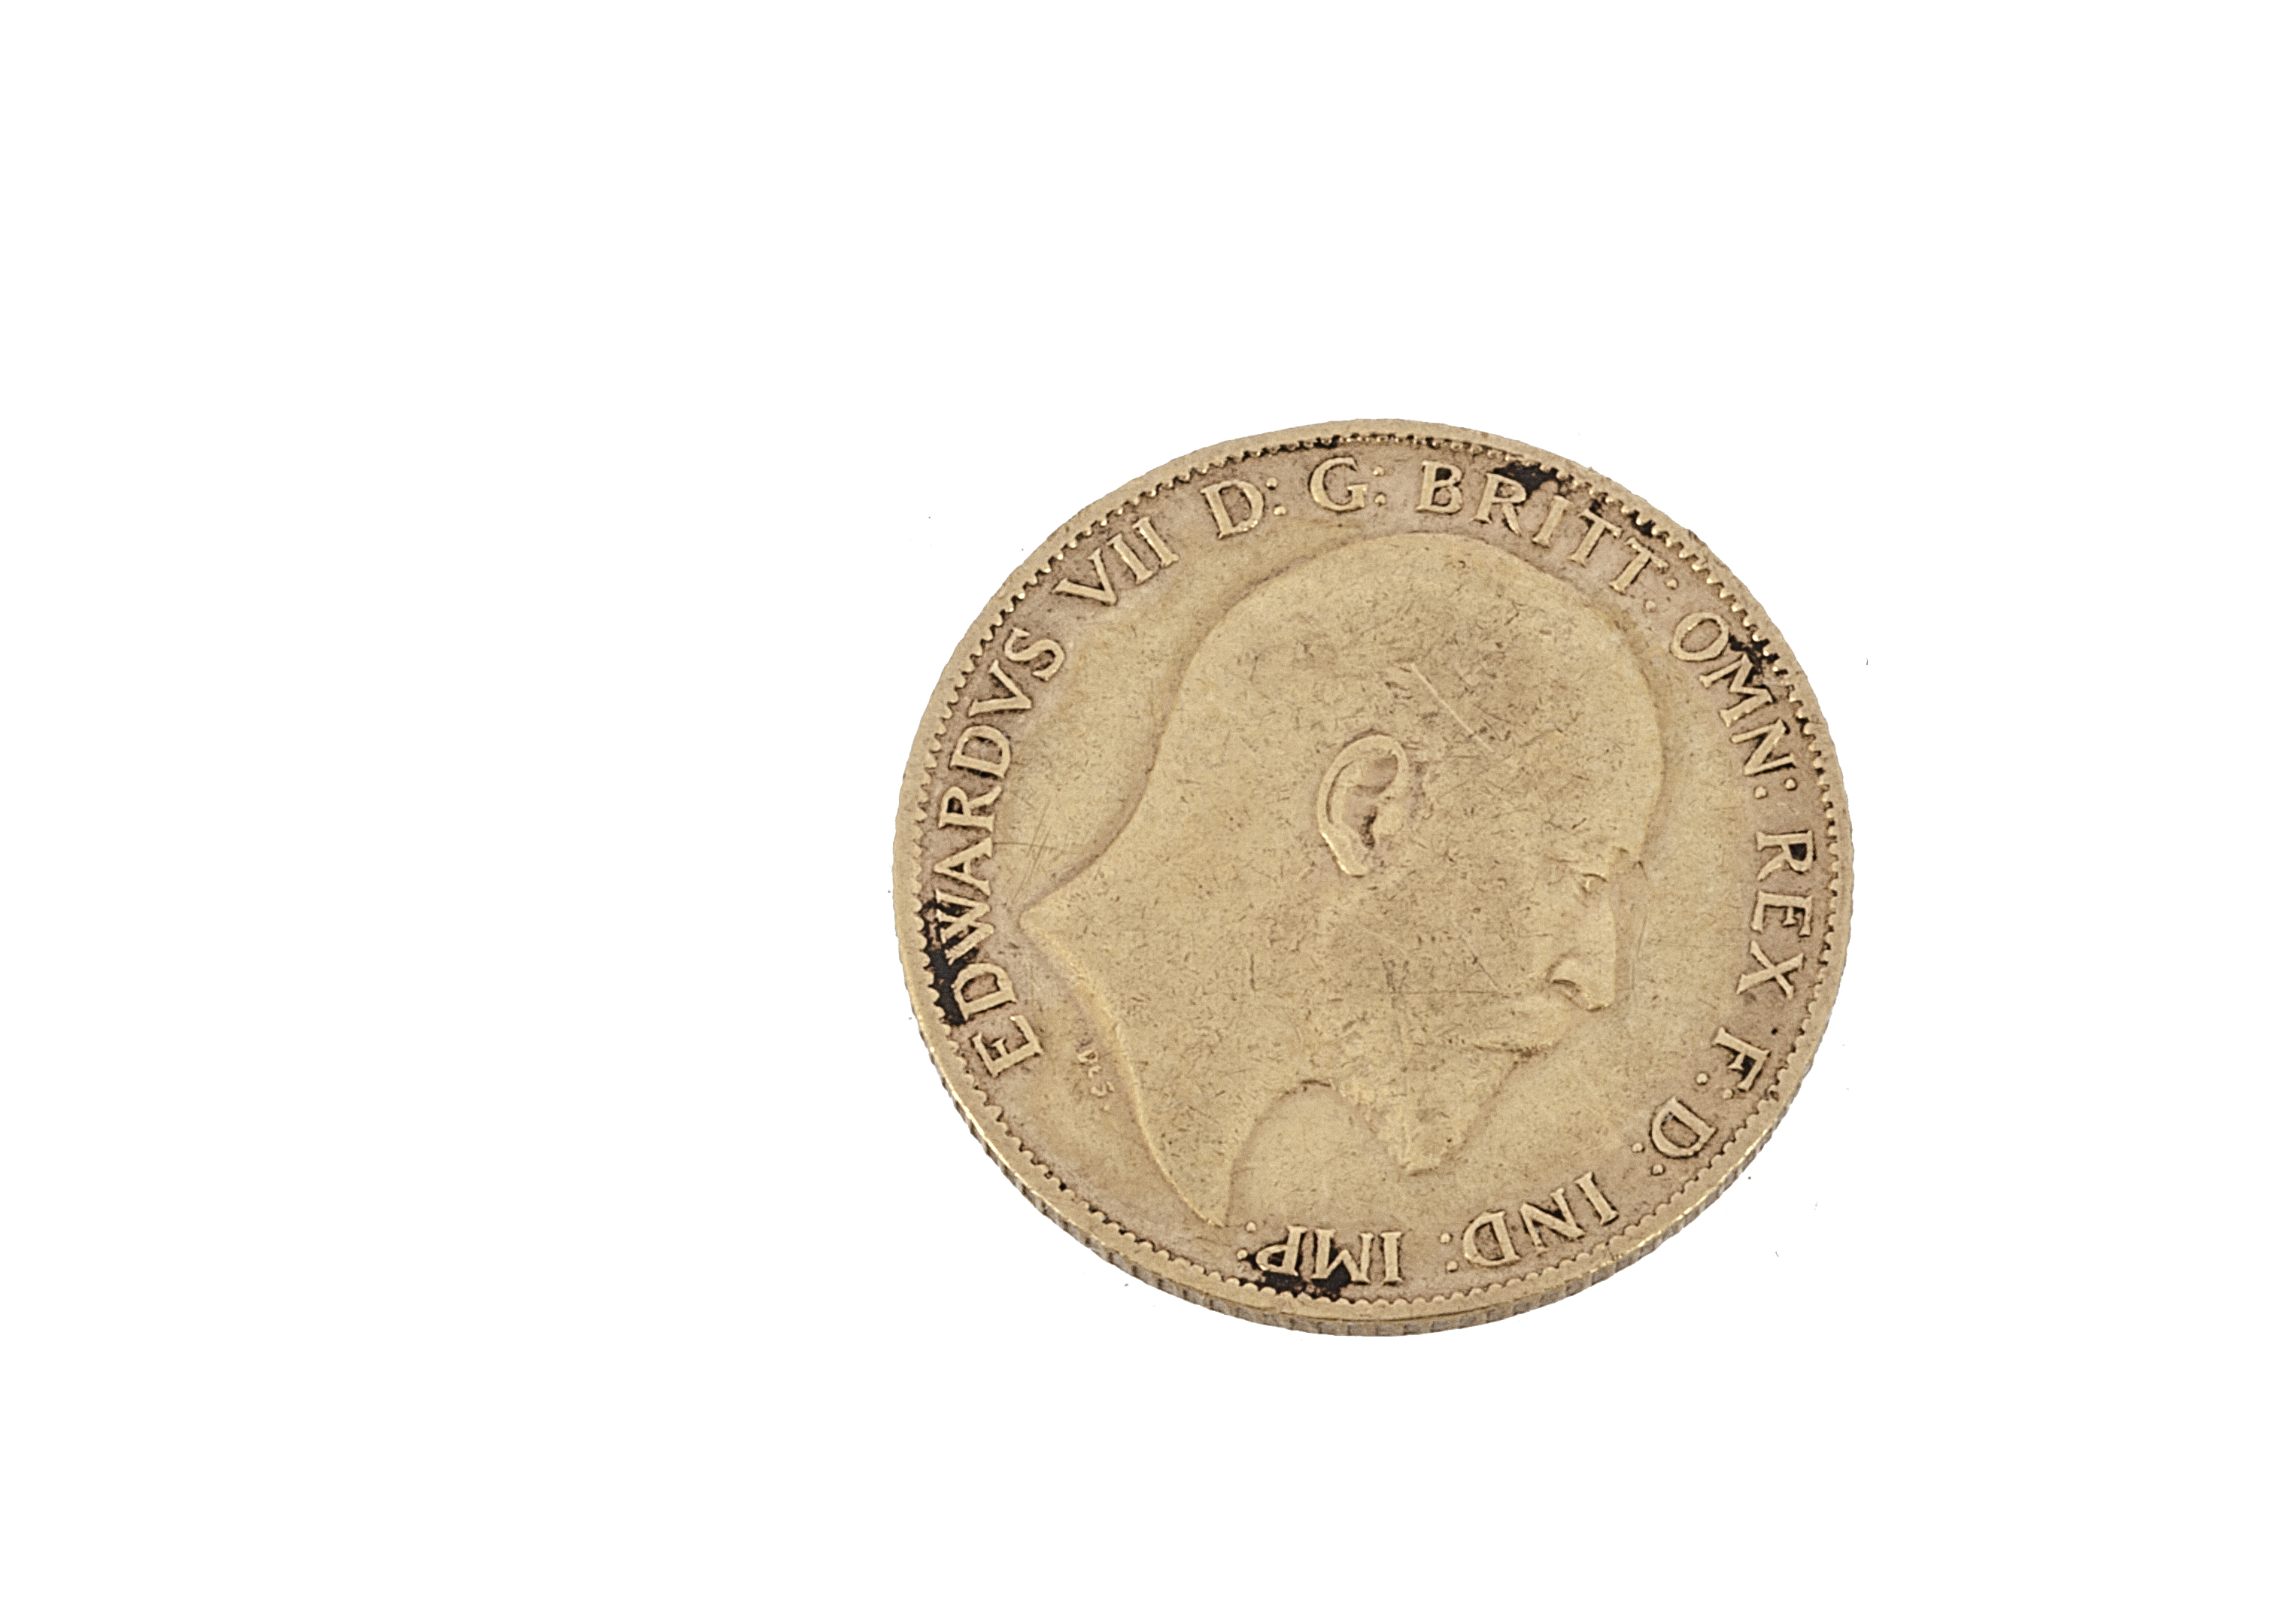 An Edward VII half gold sovereign, dated 1902, F-VF - Image 2 of 2